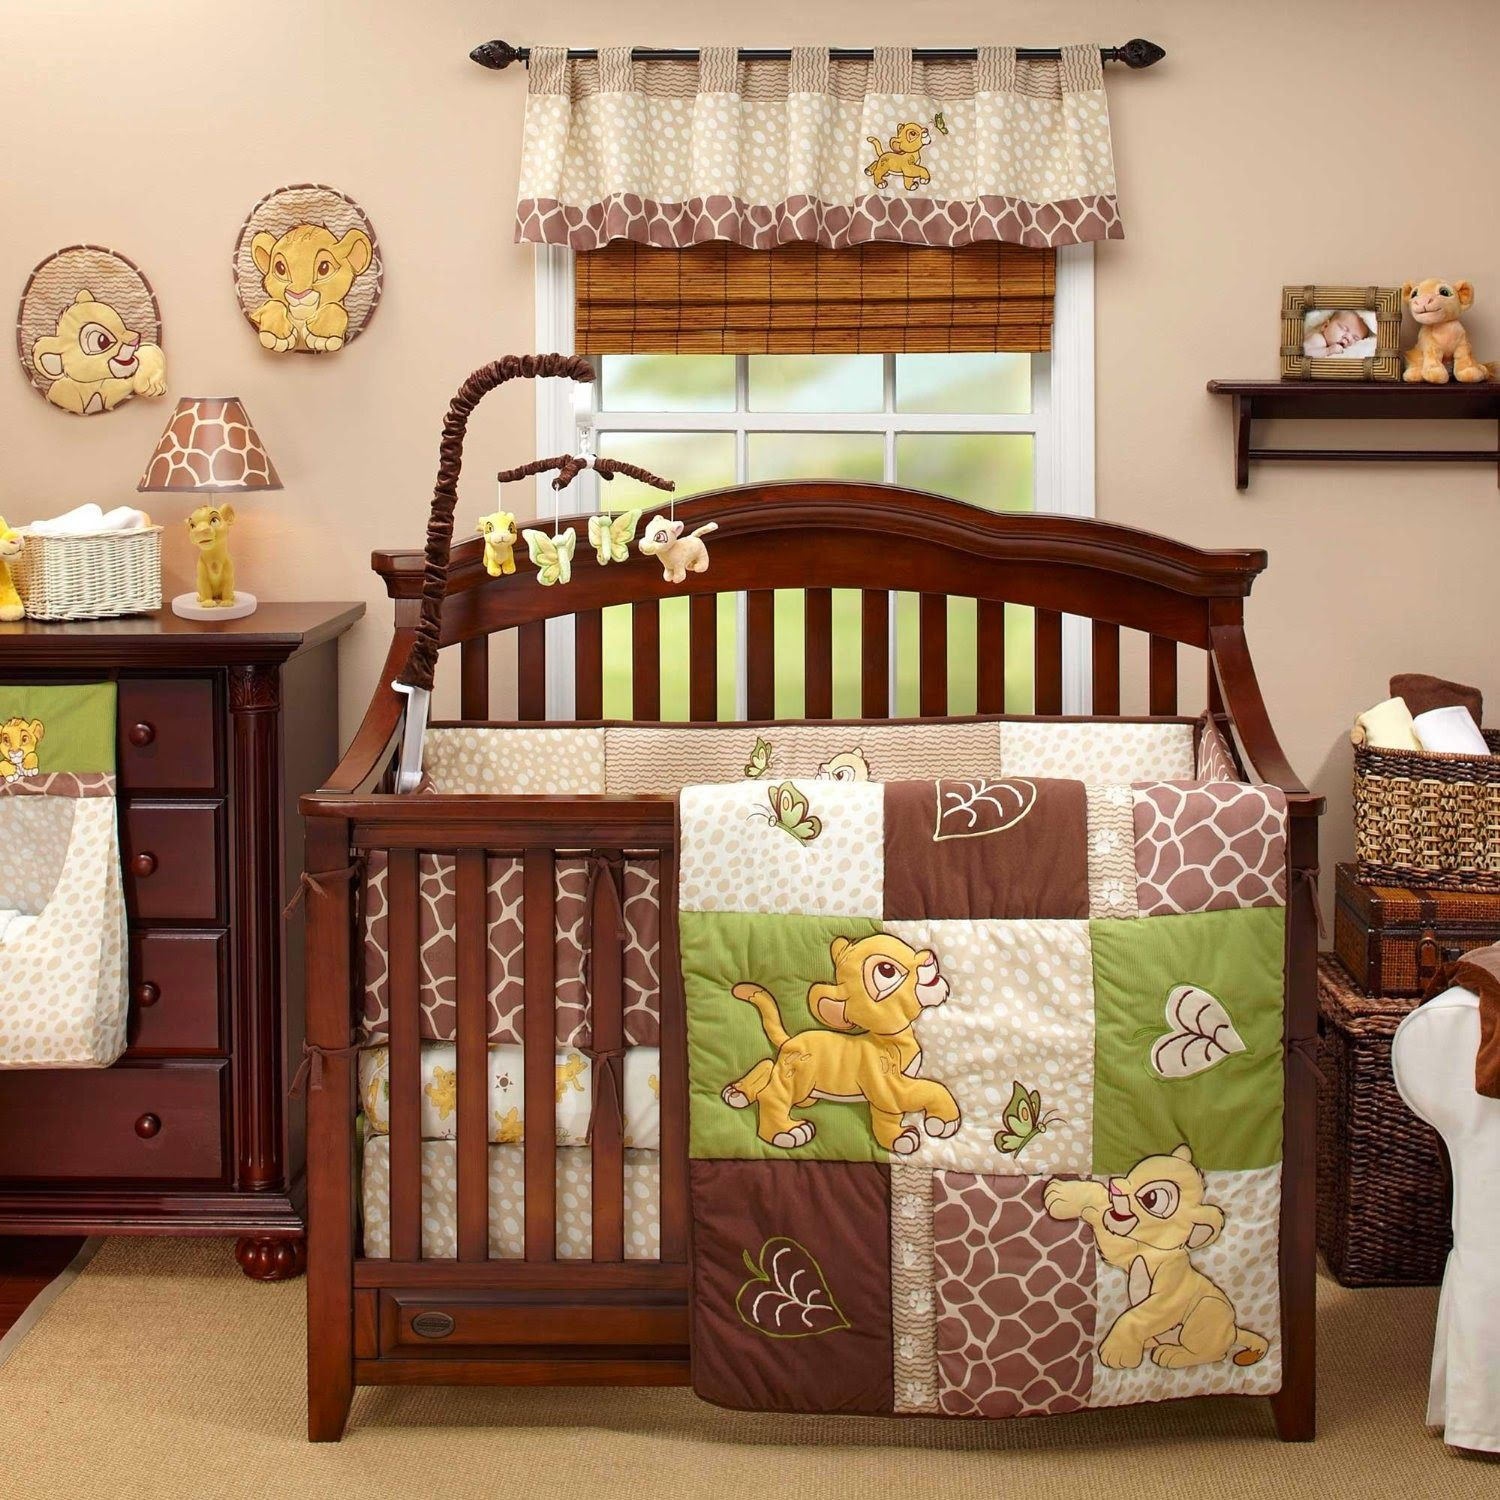 Lion King Baby Nursery Decor And Crib Sets Avec Images Idee